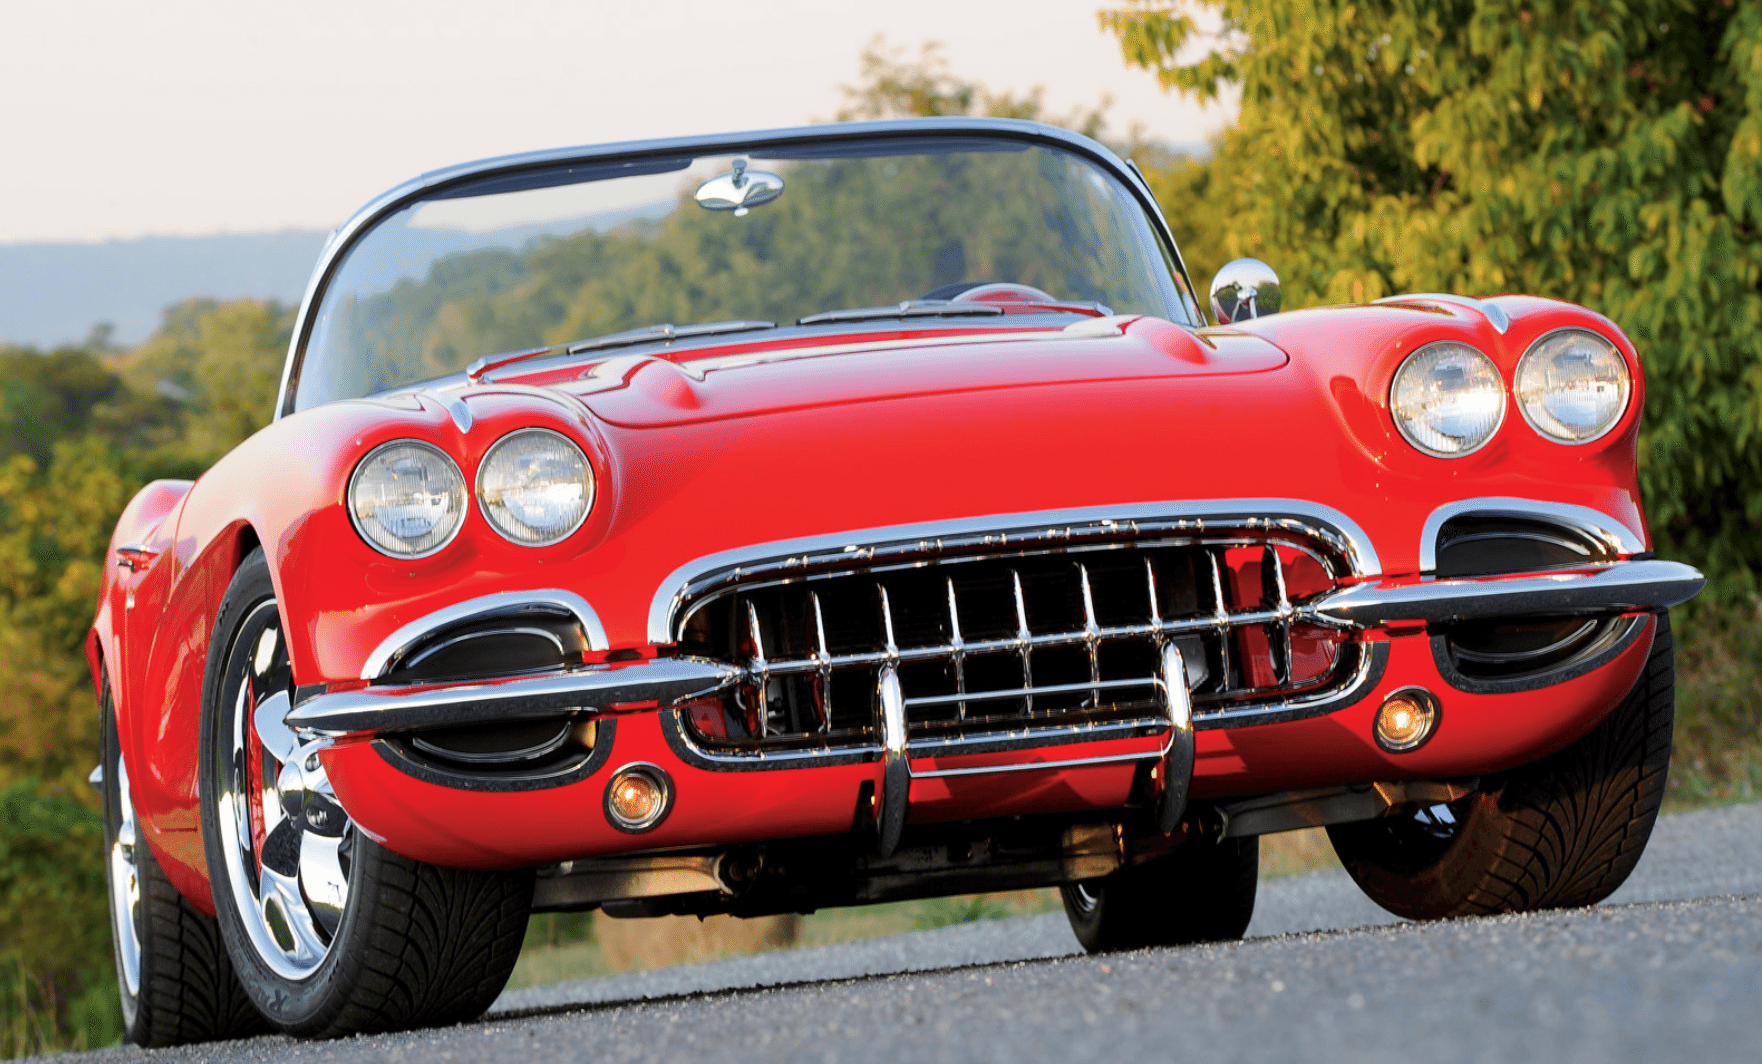 Vehicle Retirement Program >> 1962 C1 Corvette | Ultimate Guide (Overview, Specs, VIN